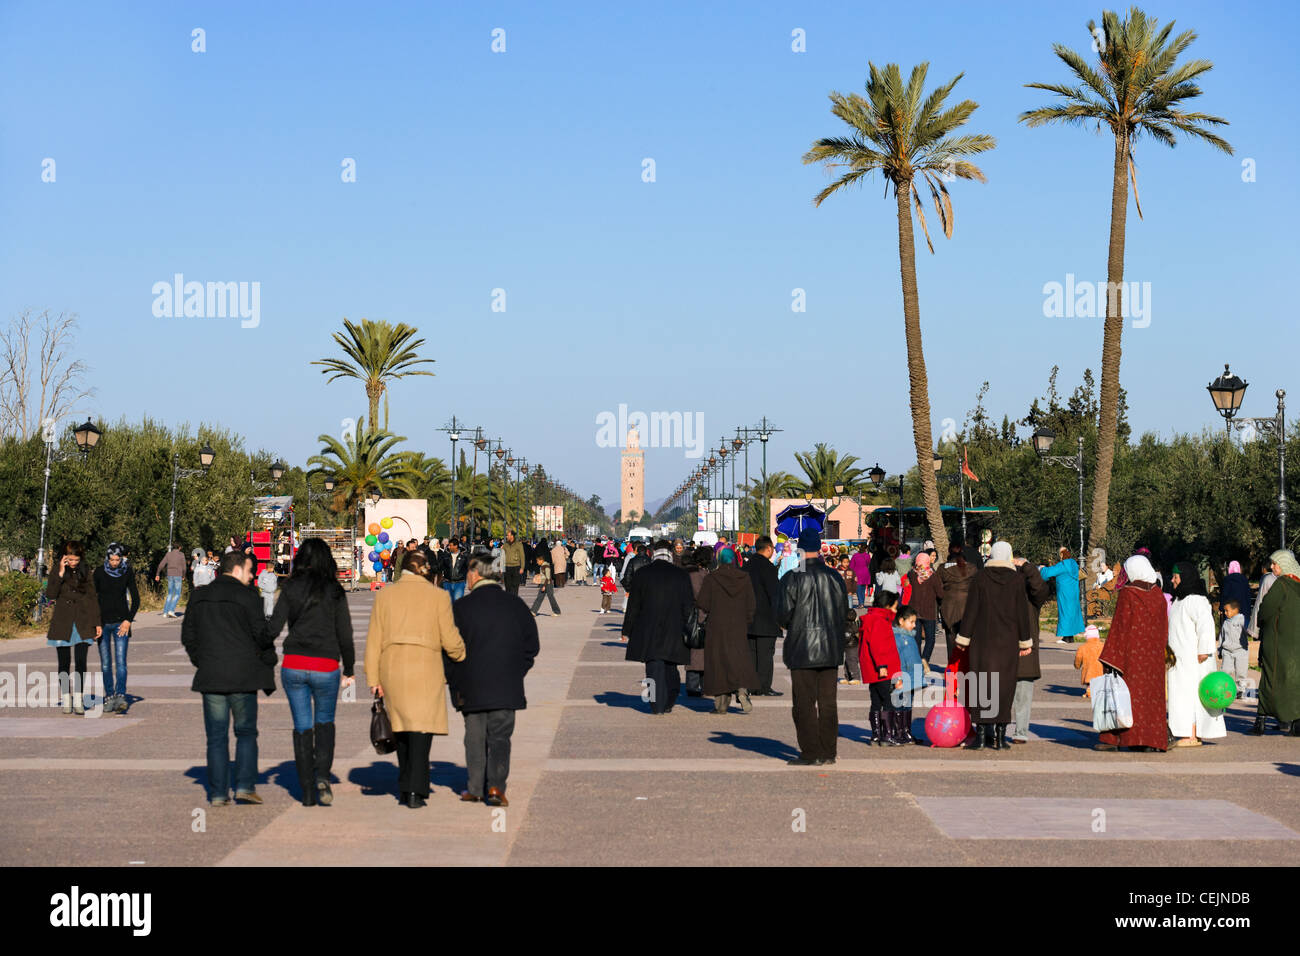 Local people in the Menara Gardens with the minaret of the Koutoubia Mosque in the distance, Marrakech, Morocco, - Stock Image